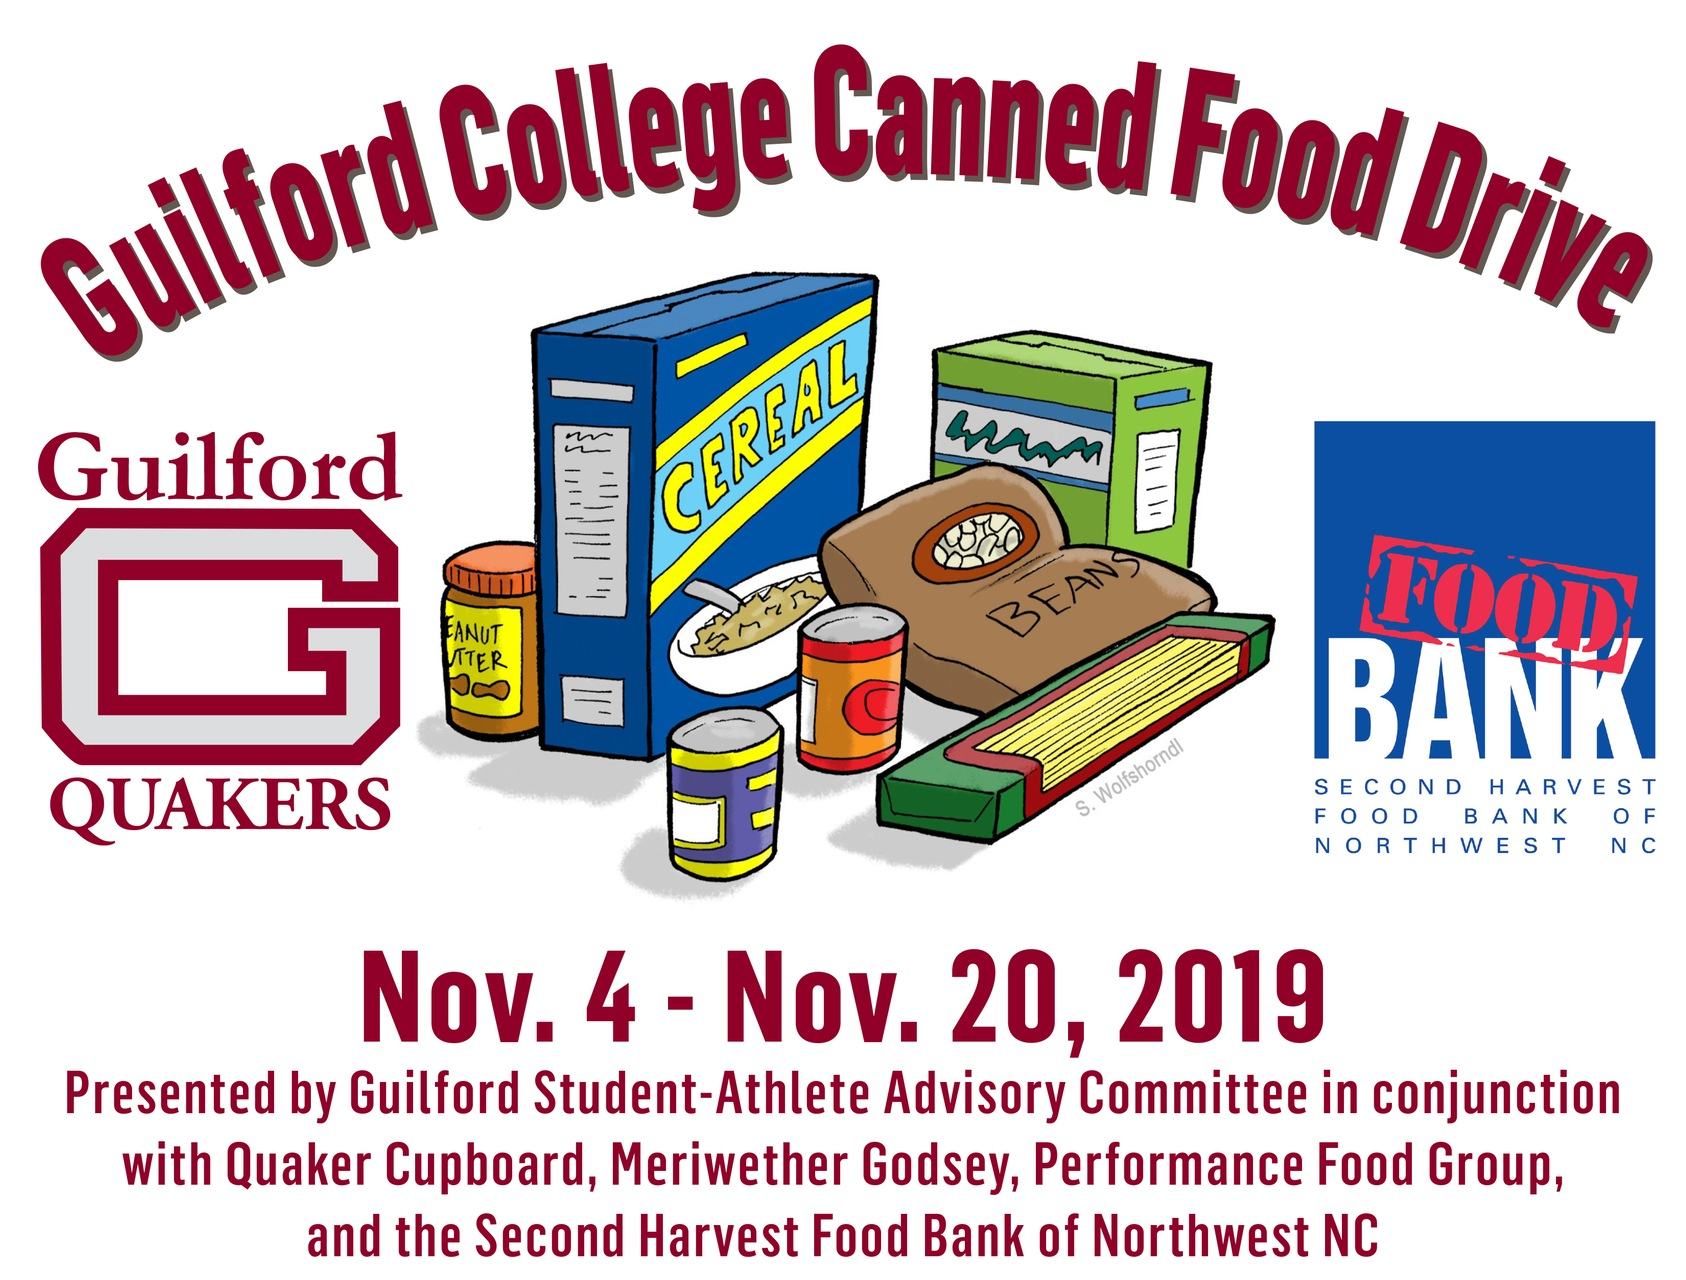 Guilford College Canned Food Drive is Underway